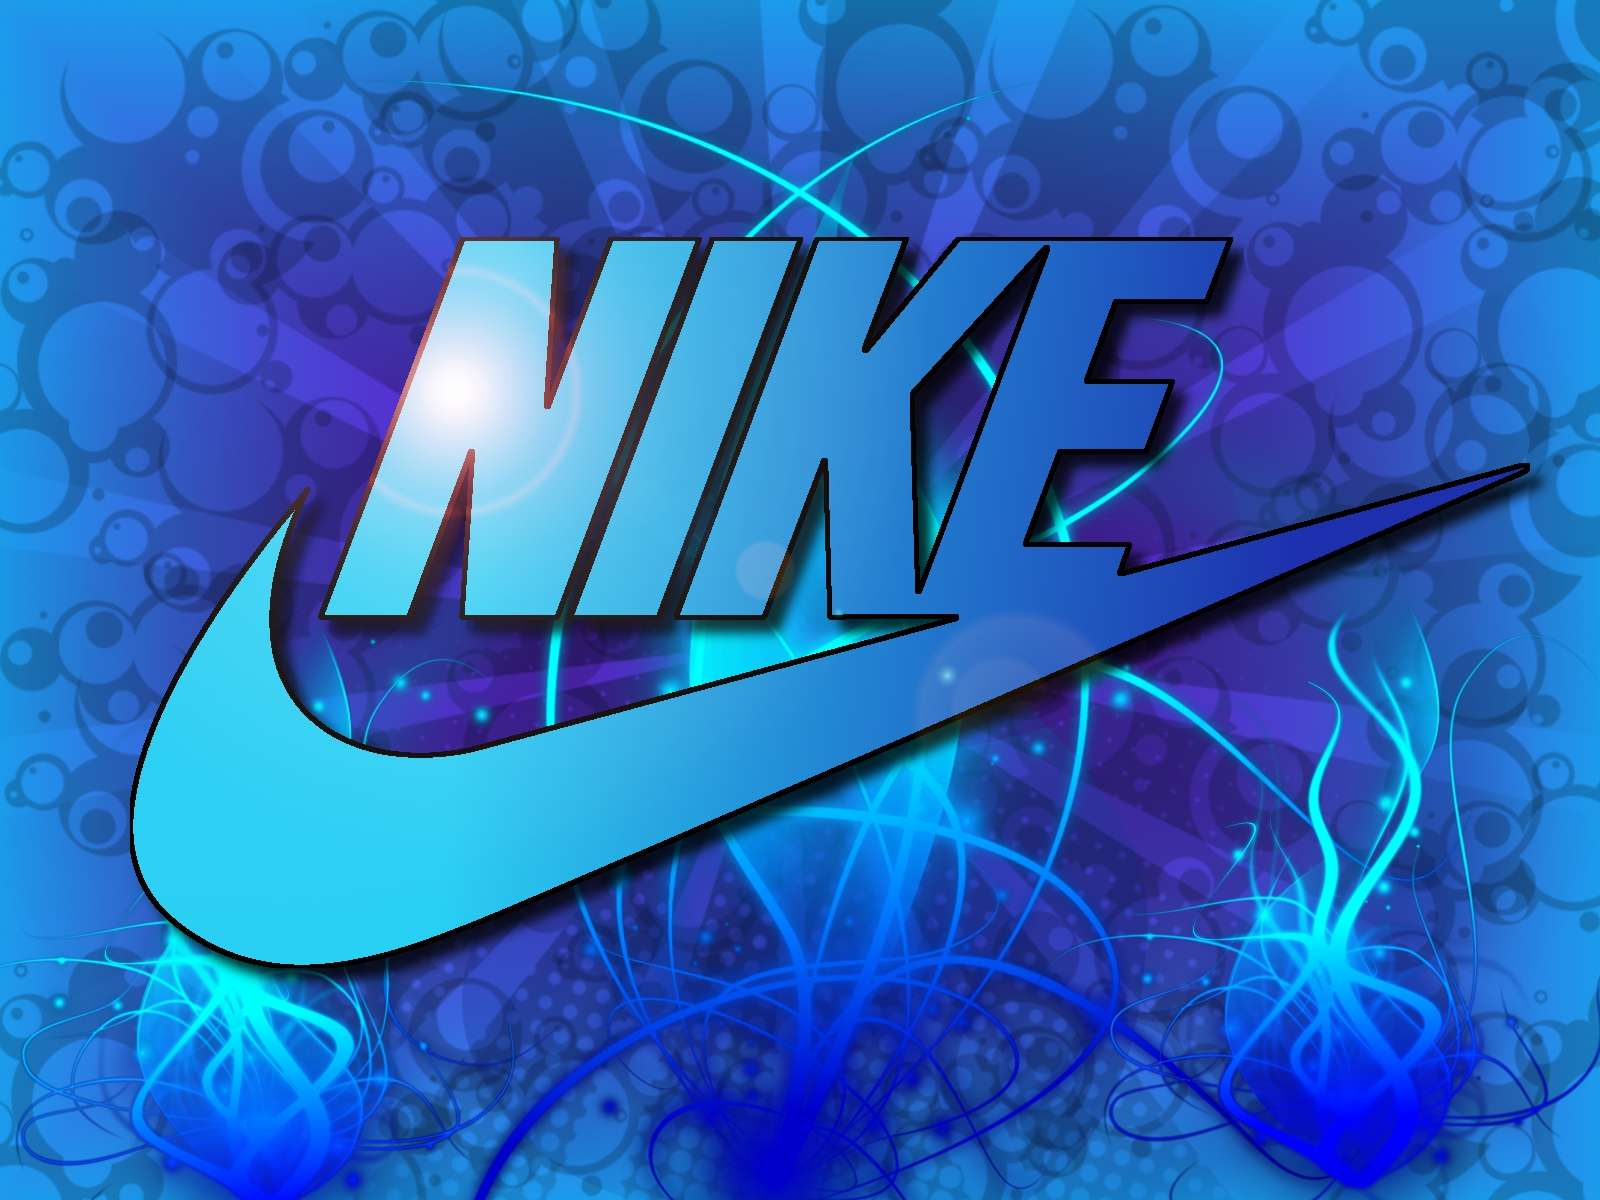 Nike Cool Backgrounds Wallpaper   HD Wallpapers 1600x1200